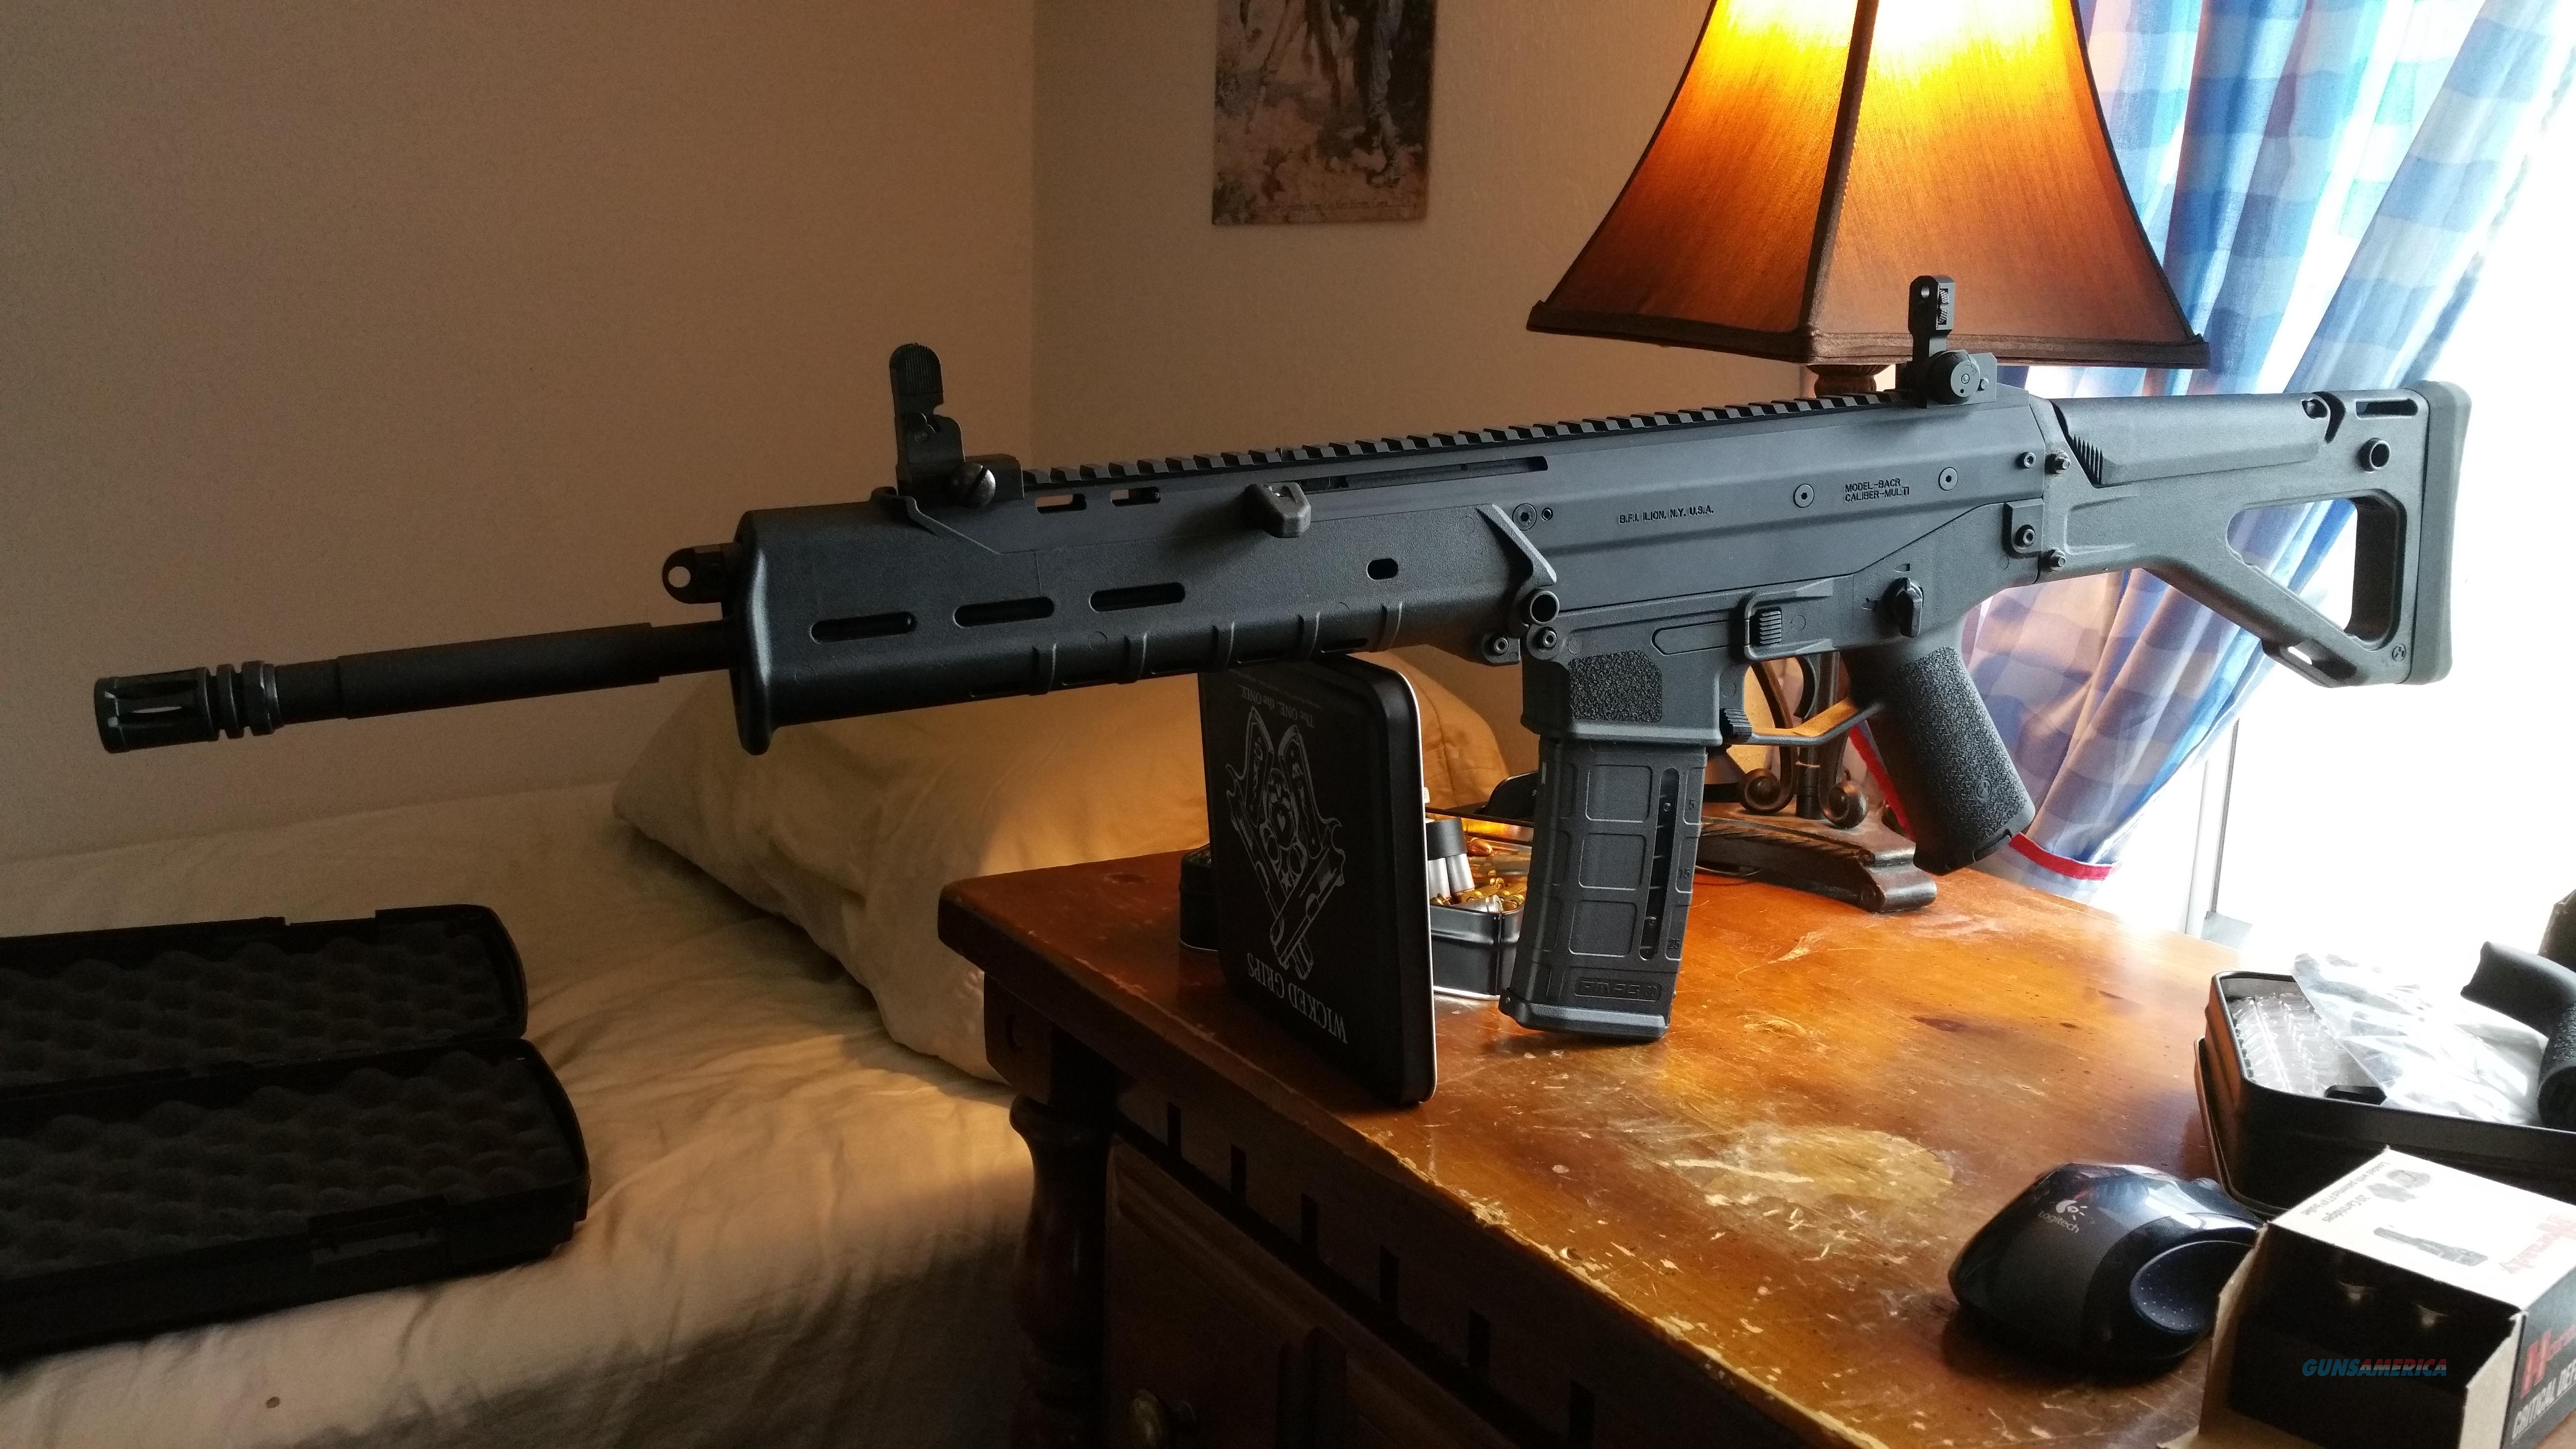 Black Bushmaster ACR with Lots of Mags and Extra Stock  Guns > Rifles > Bushmaster Rifles > Complete Rifles